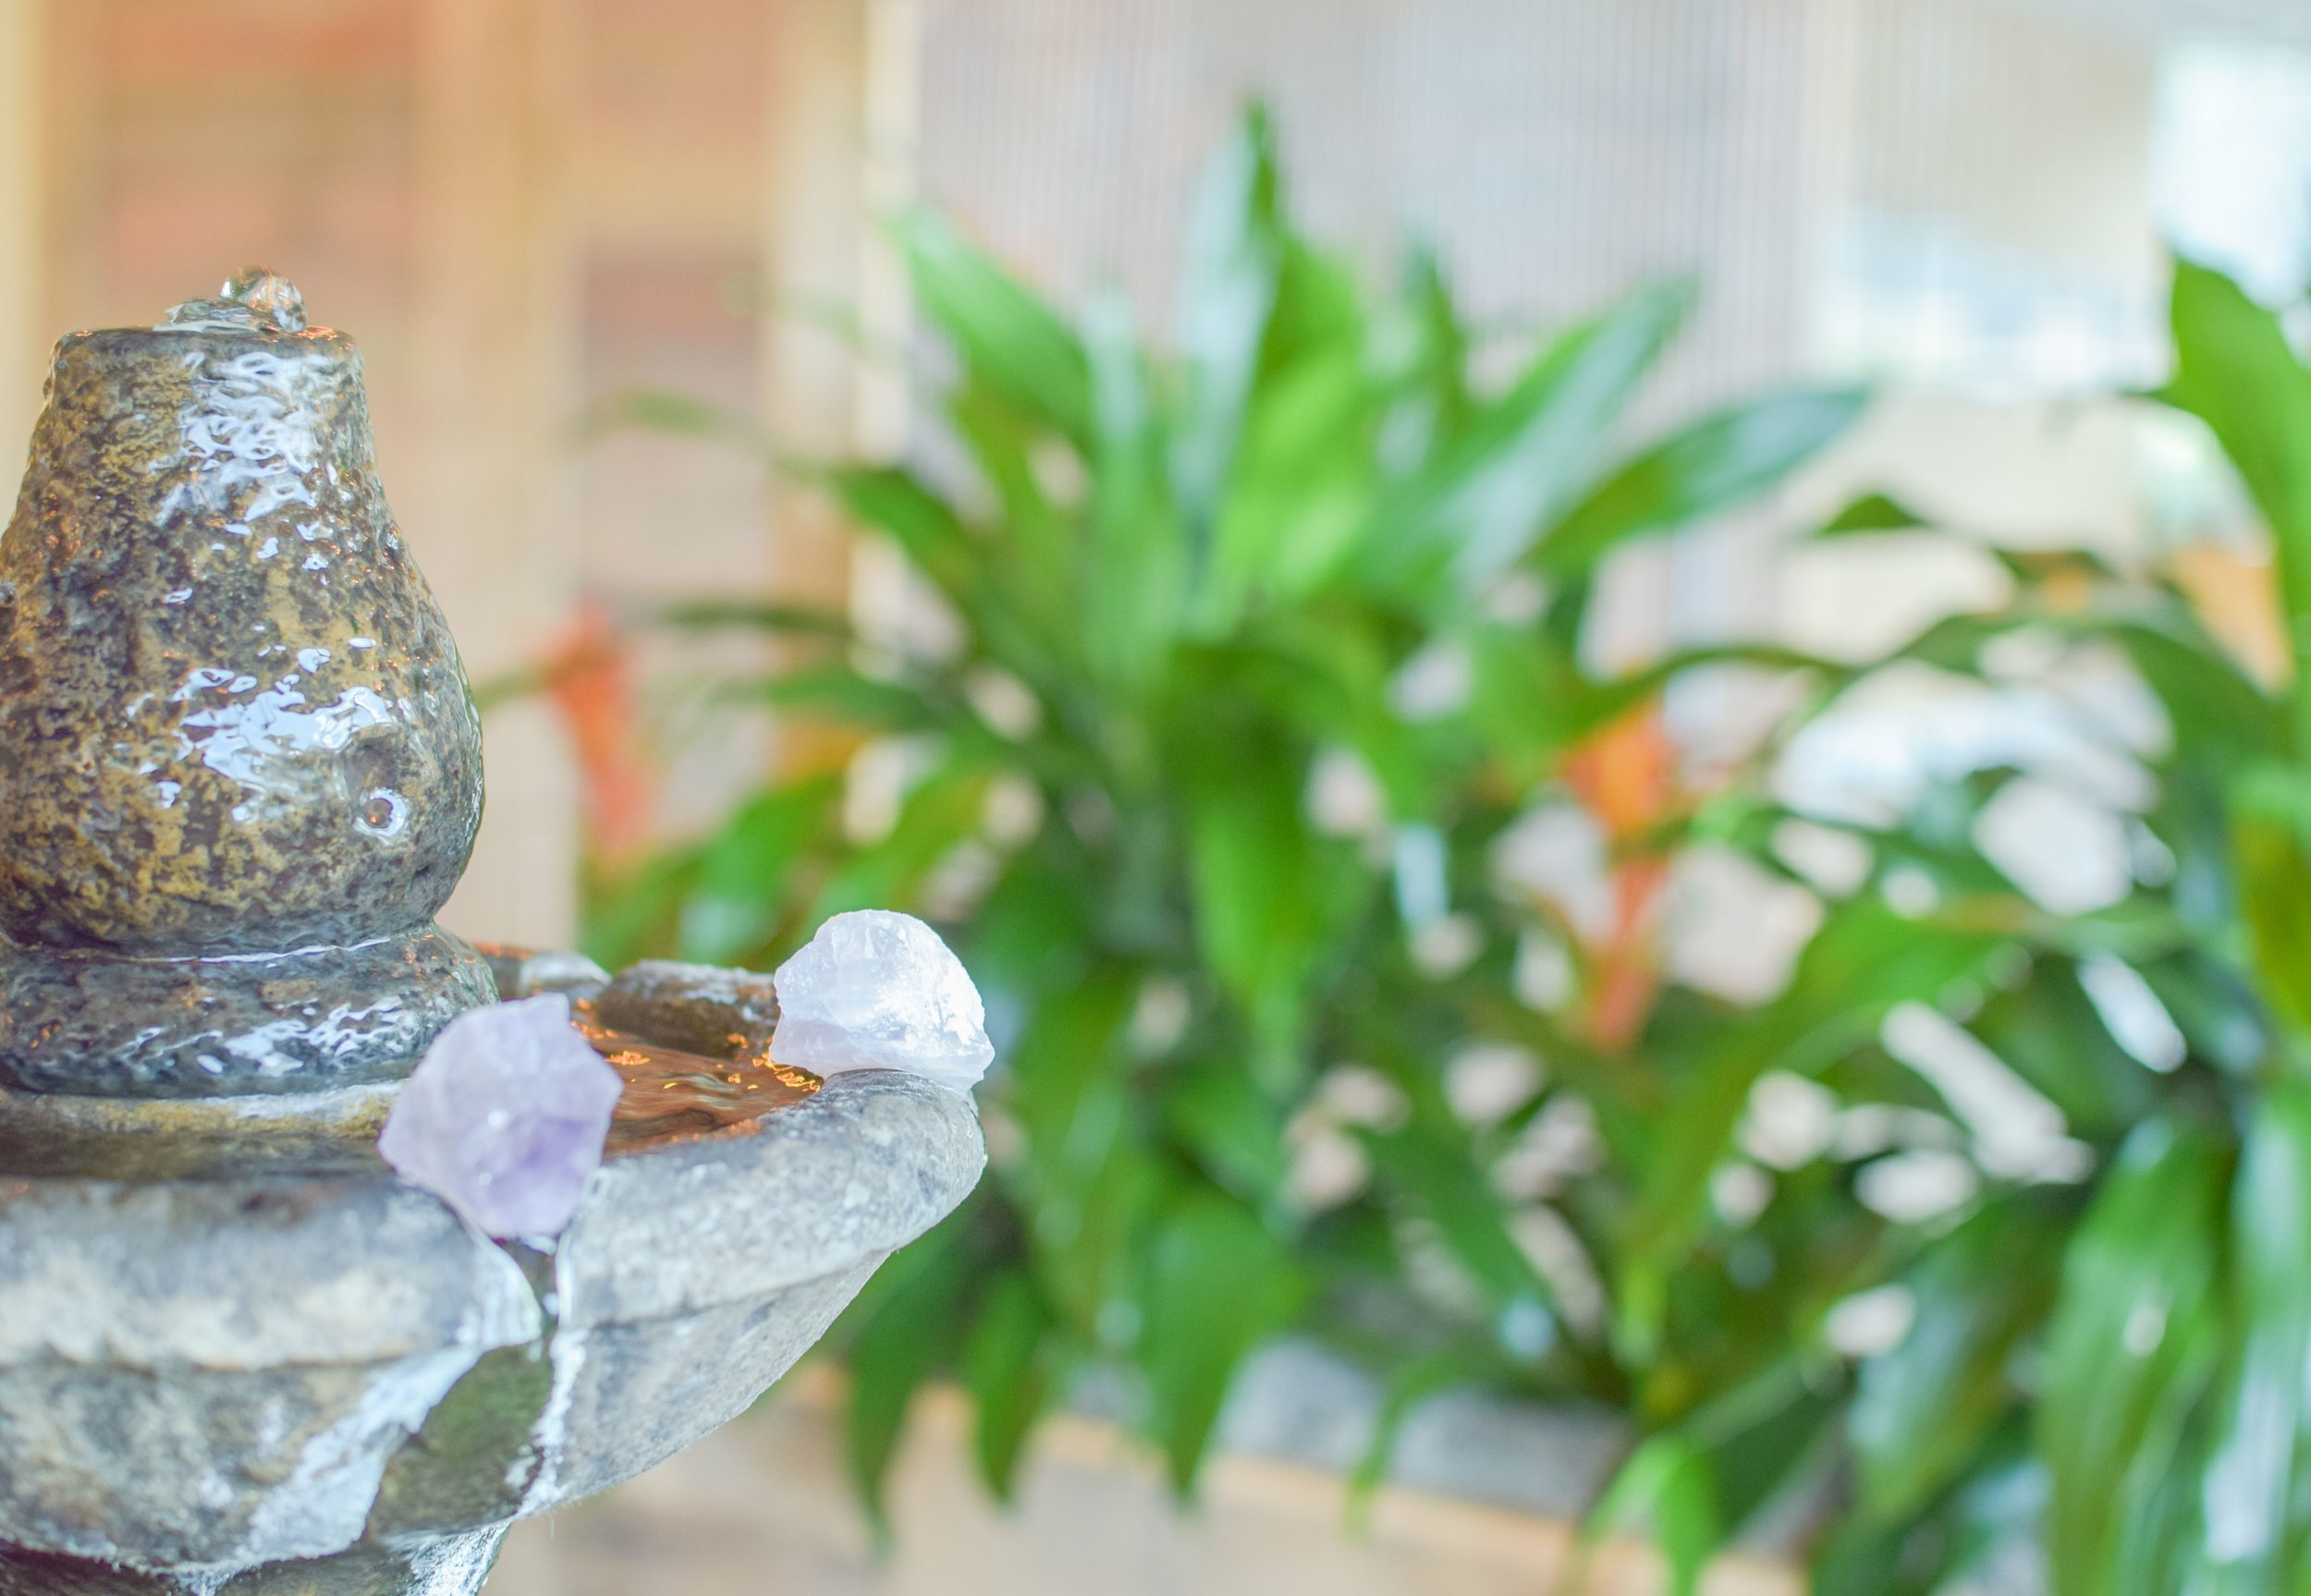 Relax - In our indoor garden space filled with nature